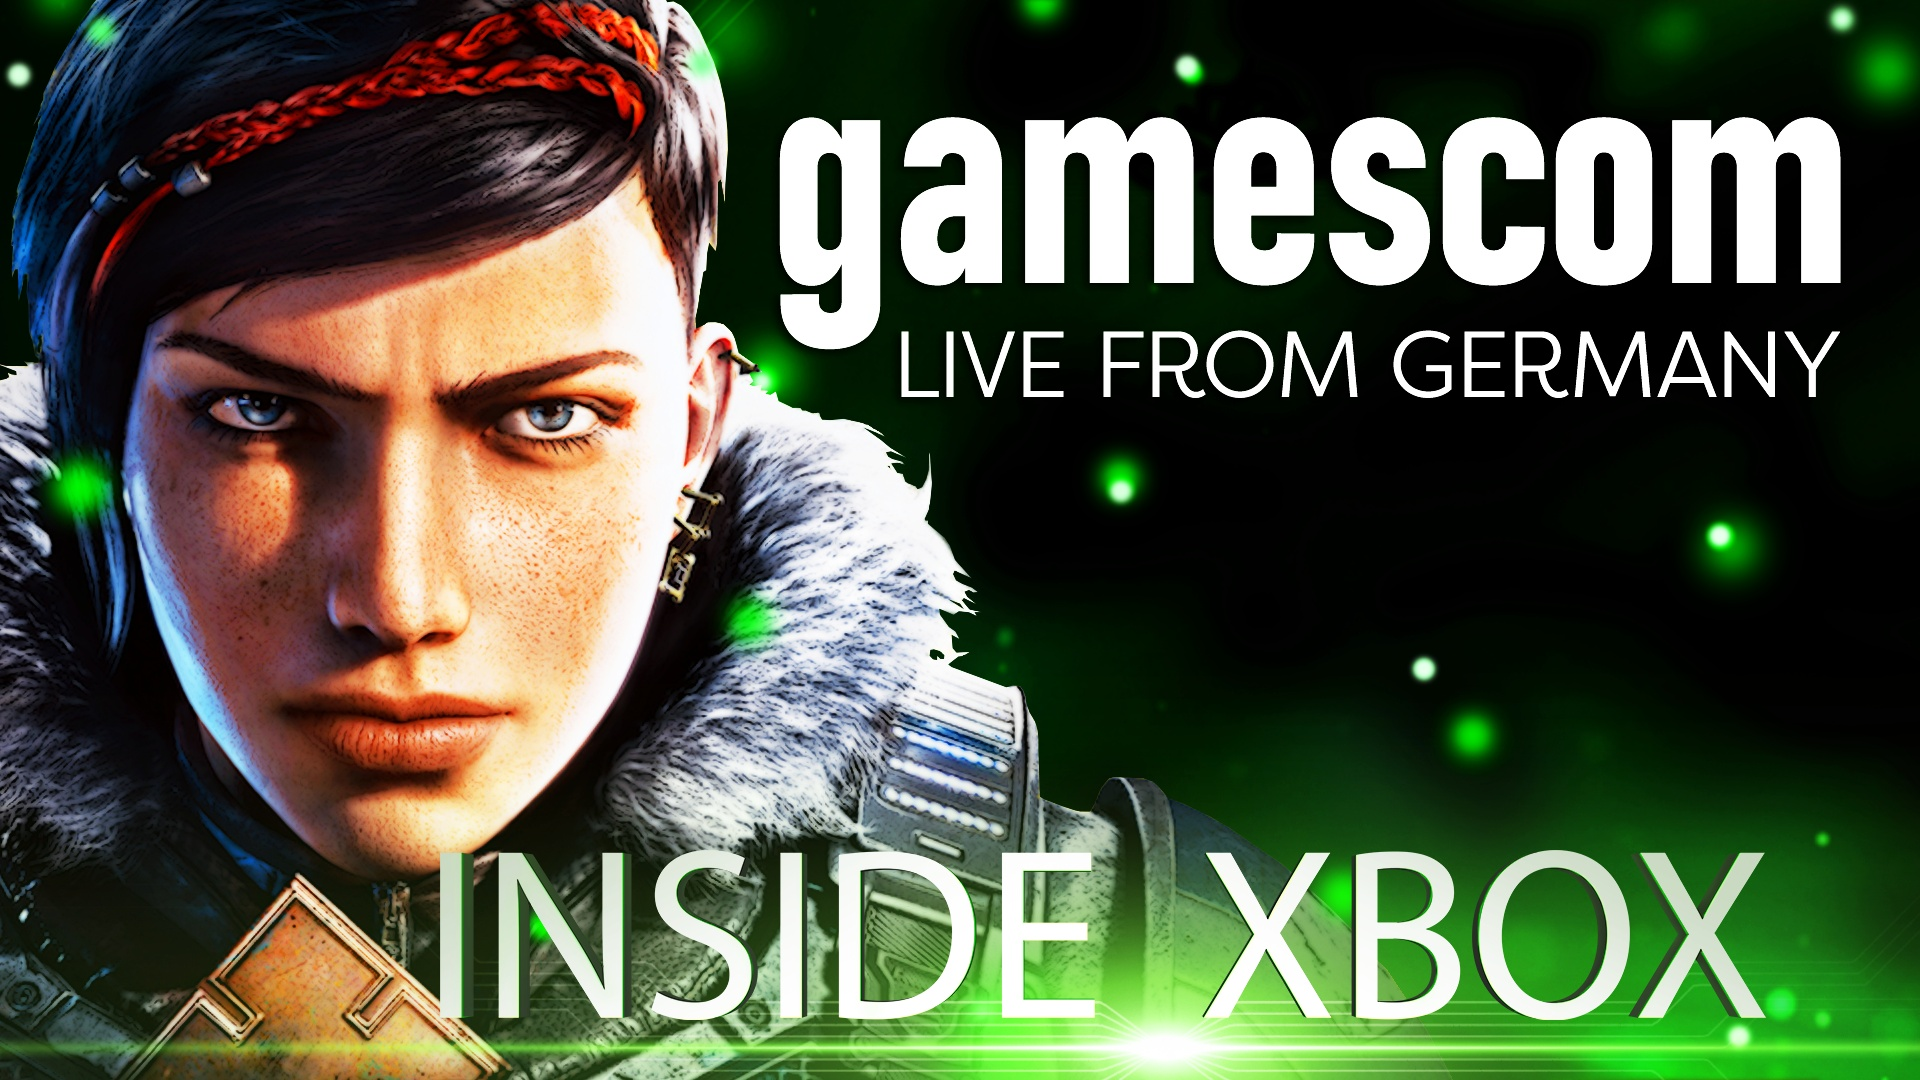 gamescom 2019 Kicks off with an All-New Inside Xbox